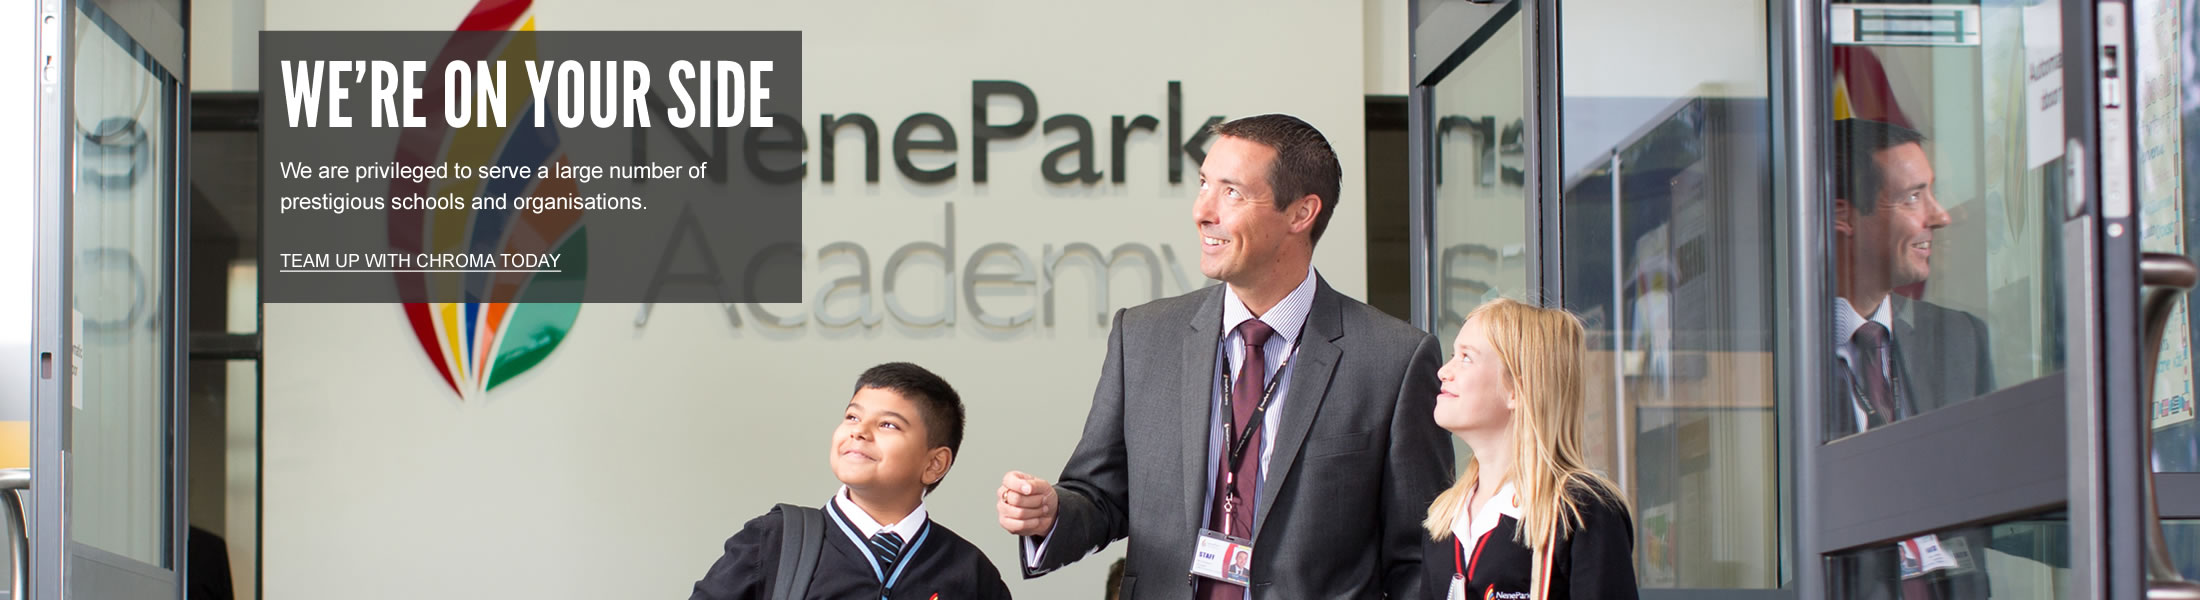 We're on your side. We are priviledged to serve a large number of prestigious schools and organisations